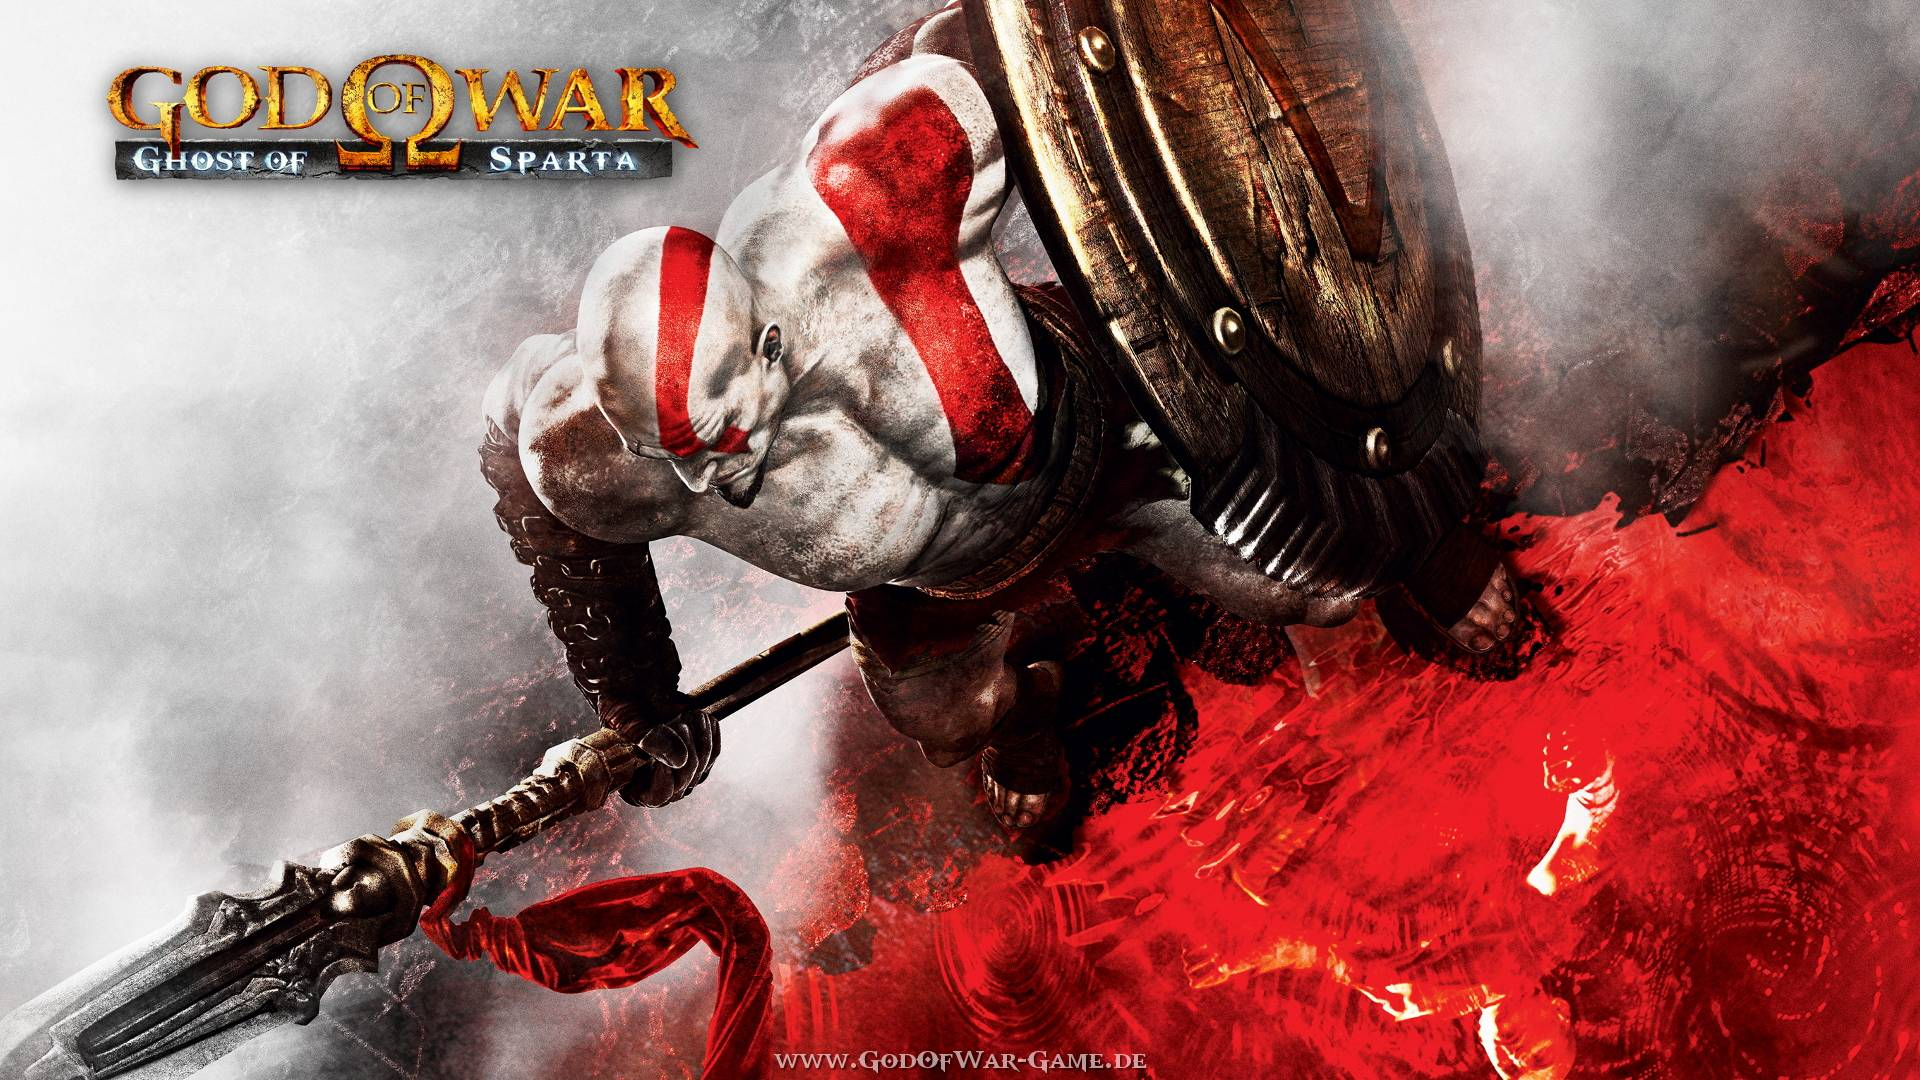 images for god of war wallpaper hd 1080p